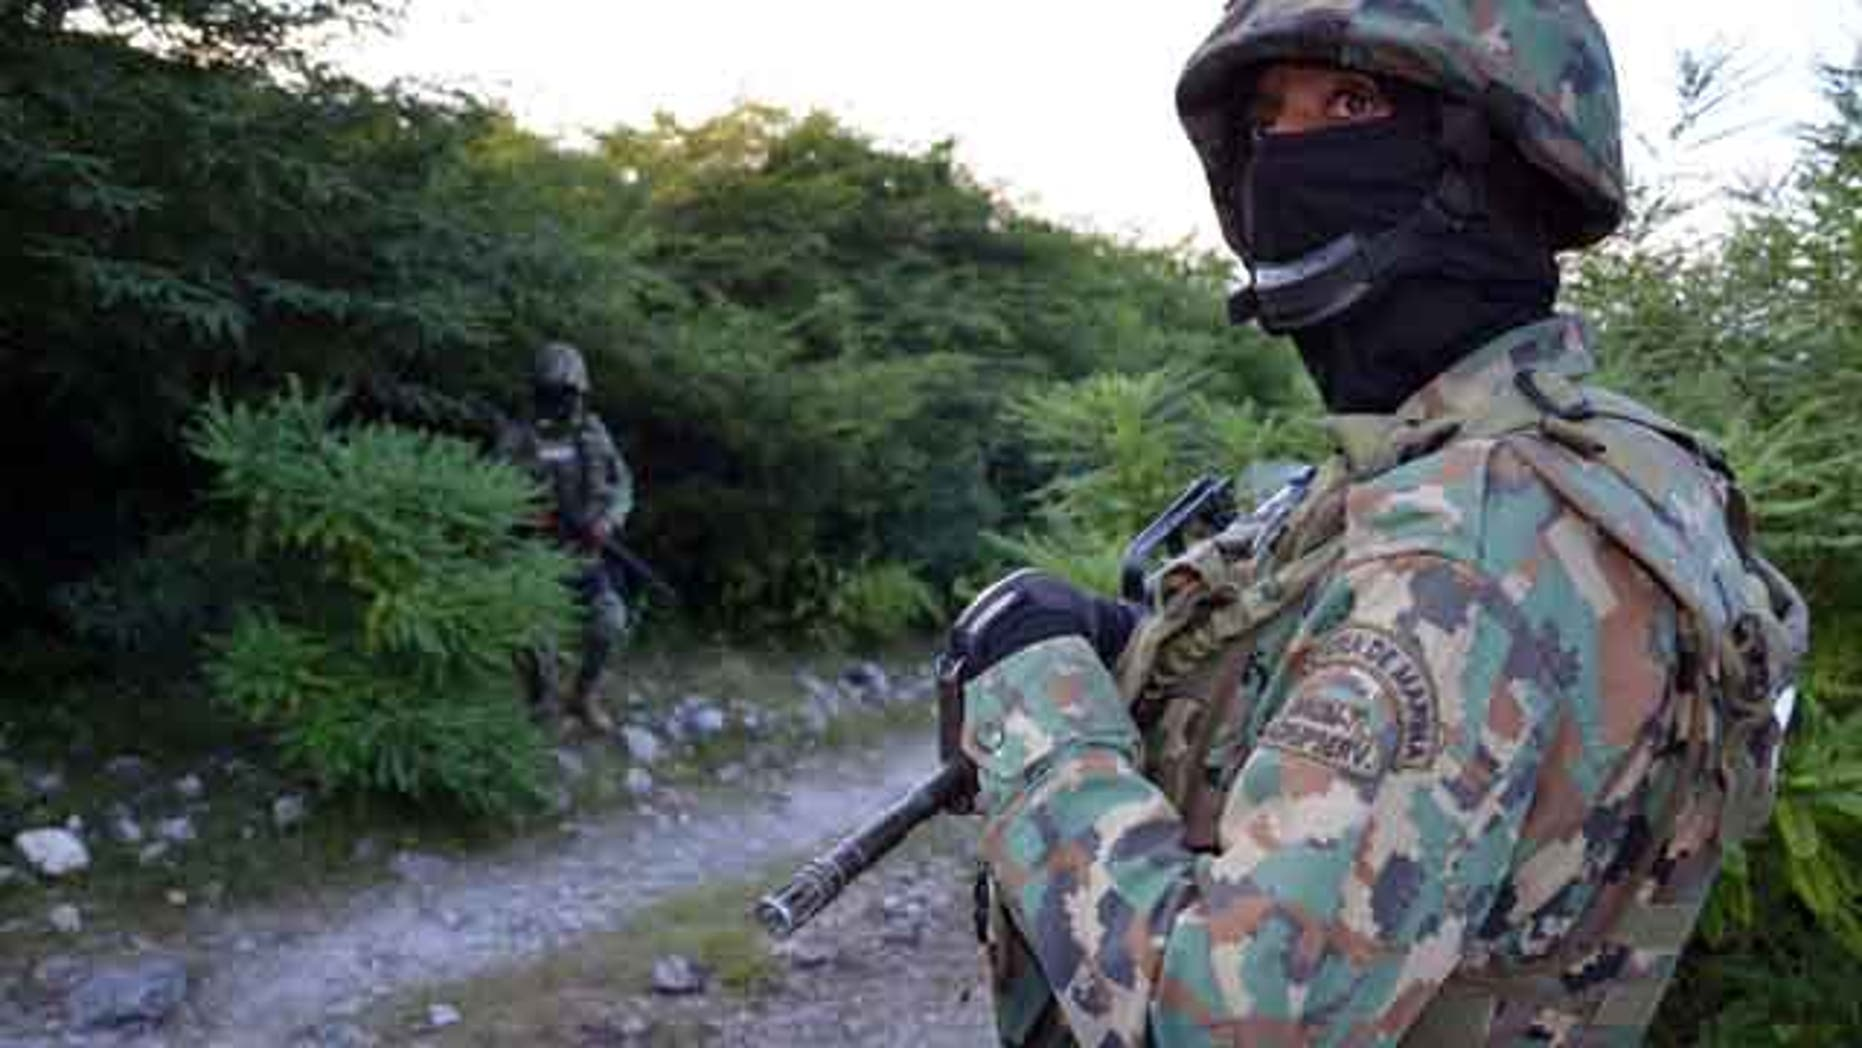 October 27, 2014: Mexican marines guard the area where new clandestine mass graves were found near the outskirts of Cocula, Mexico. (AP Photo/Alejandrino Gonzalez)